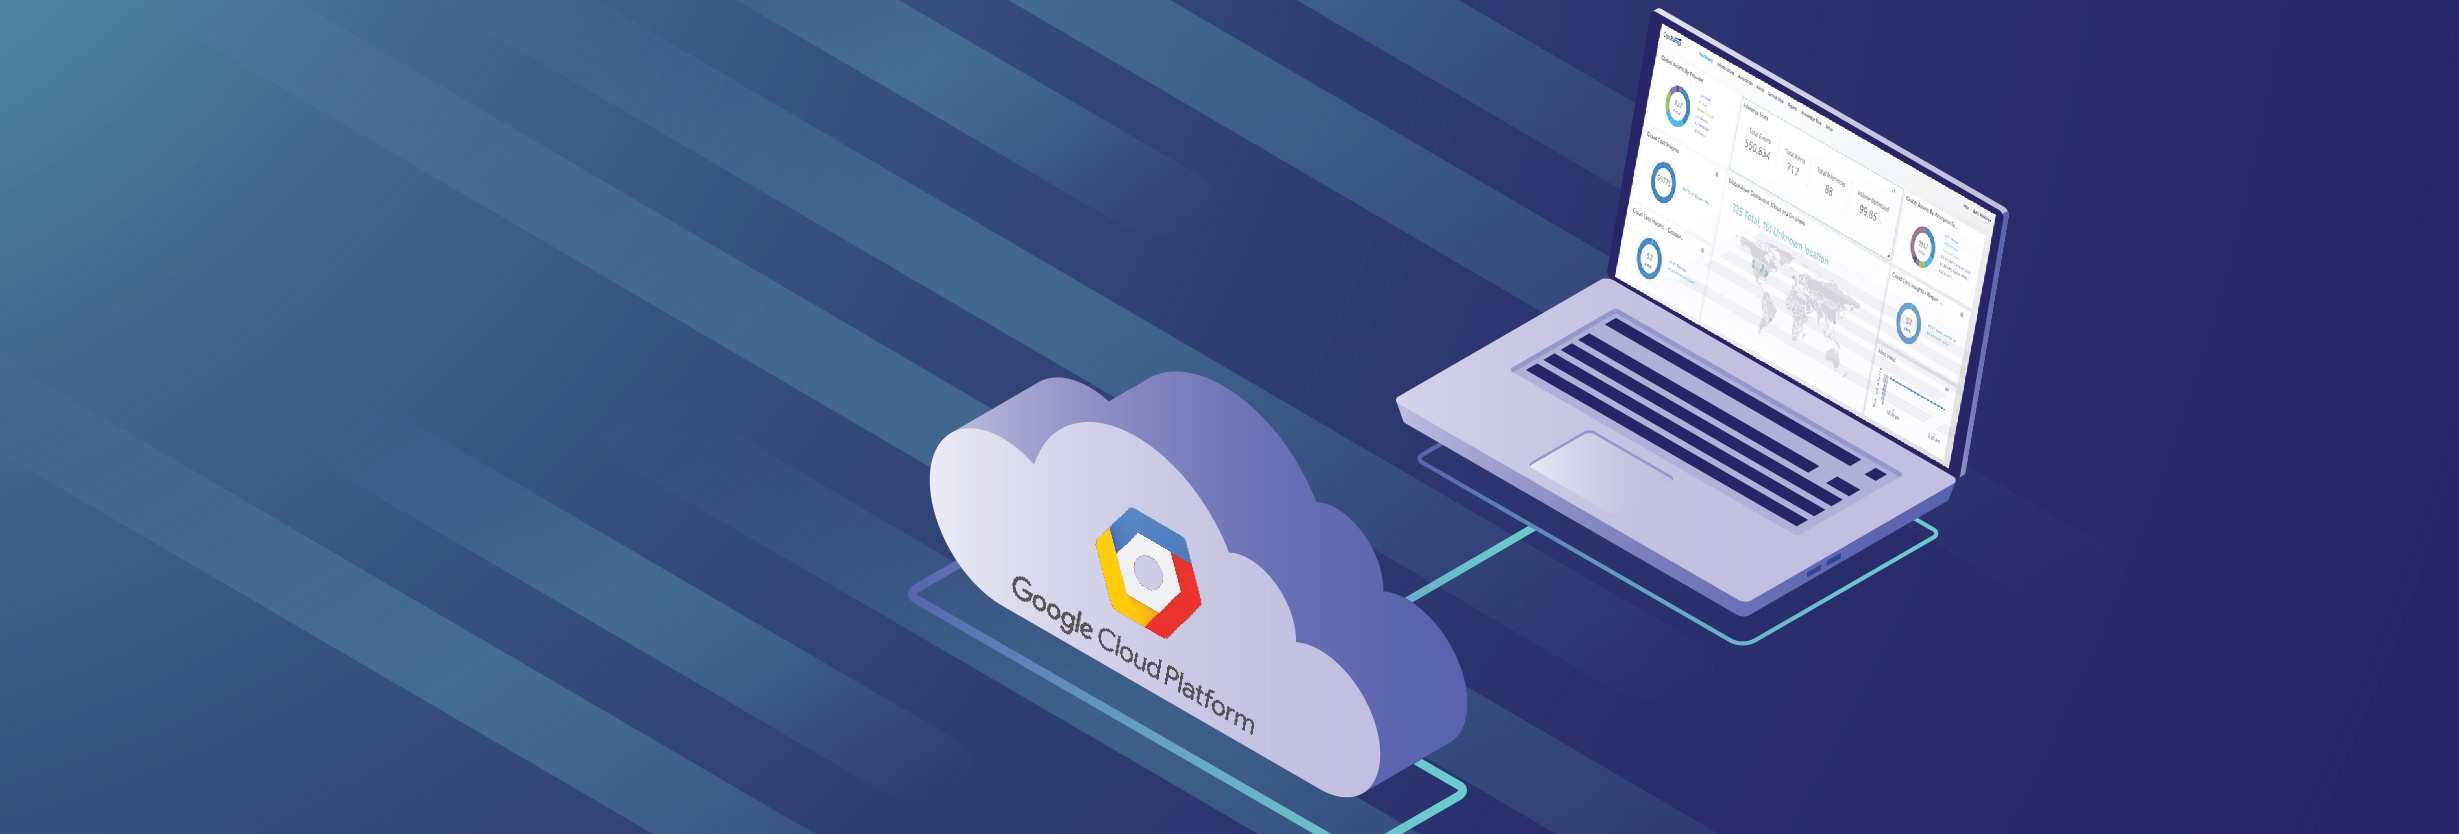 Using Google Cloud Platform In Your Enterprise? Gain Instant Insights and Repair Issues Faster With OpsRamp's Google Cloud Platform Monitoring.